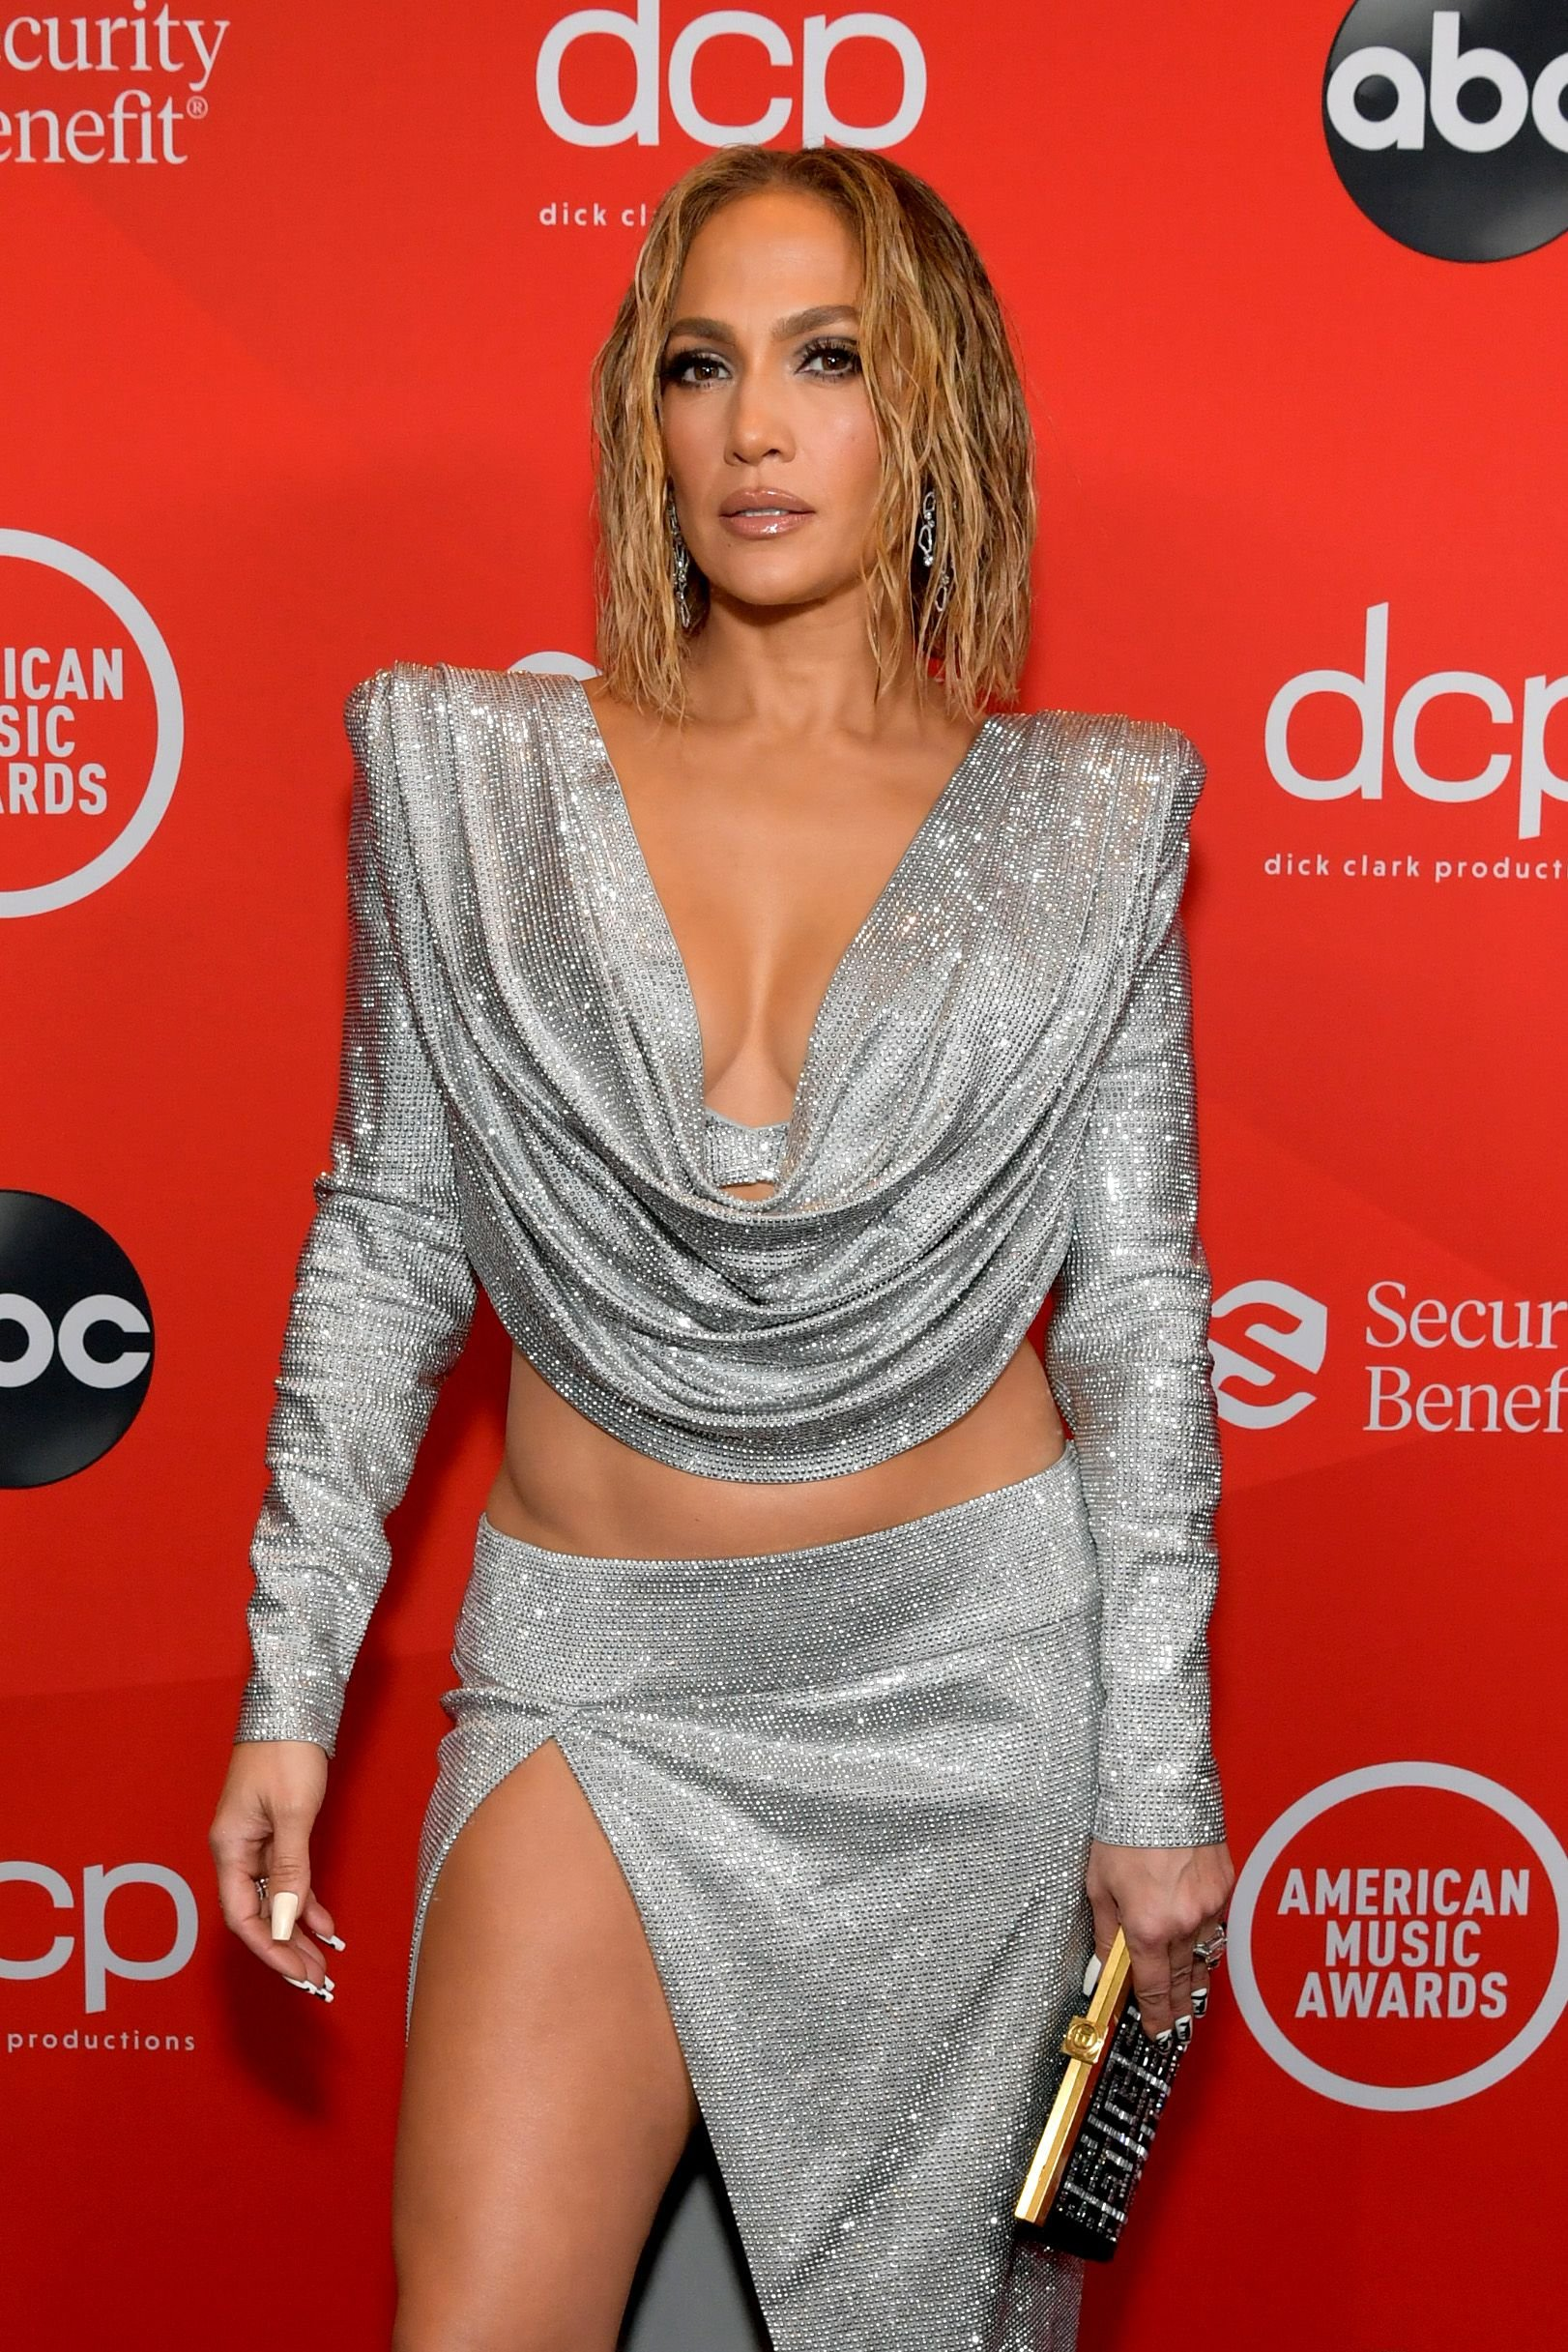 Jennifer Lopez attends the 2020 American Music Awards at Microsoft Theater on November 22, 2020 | Getty Images